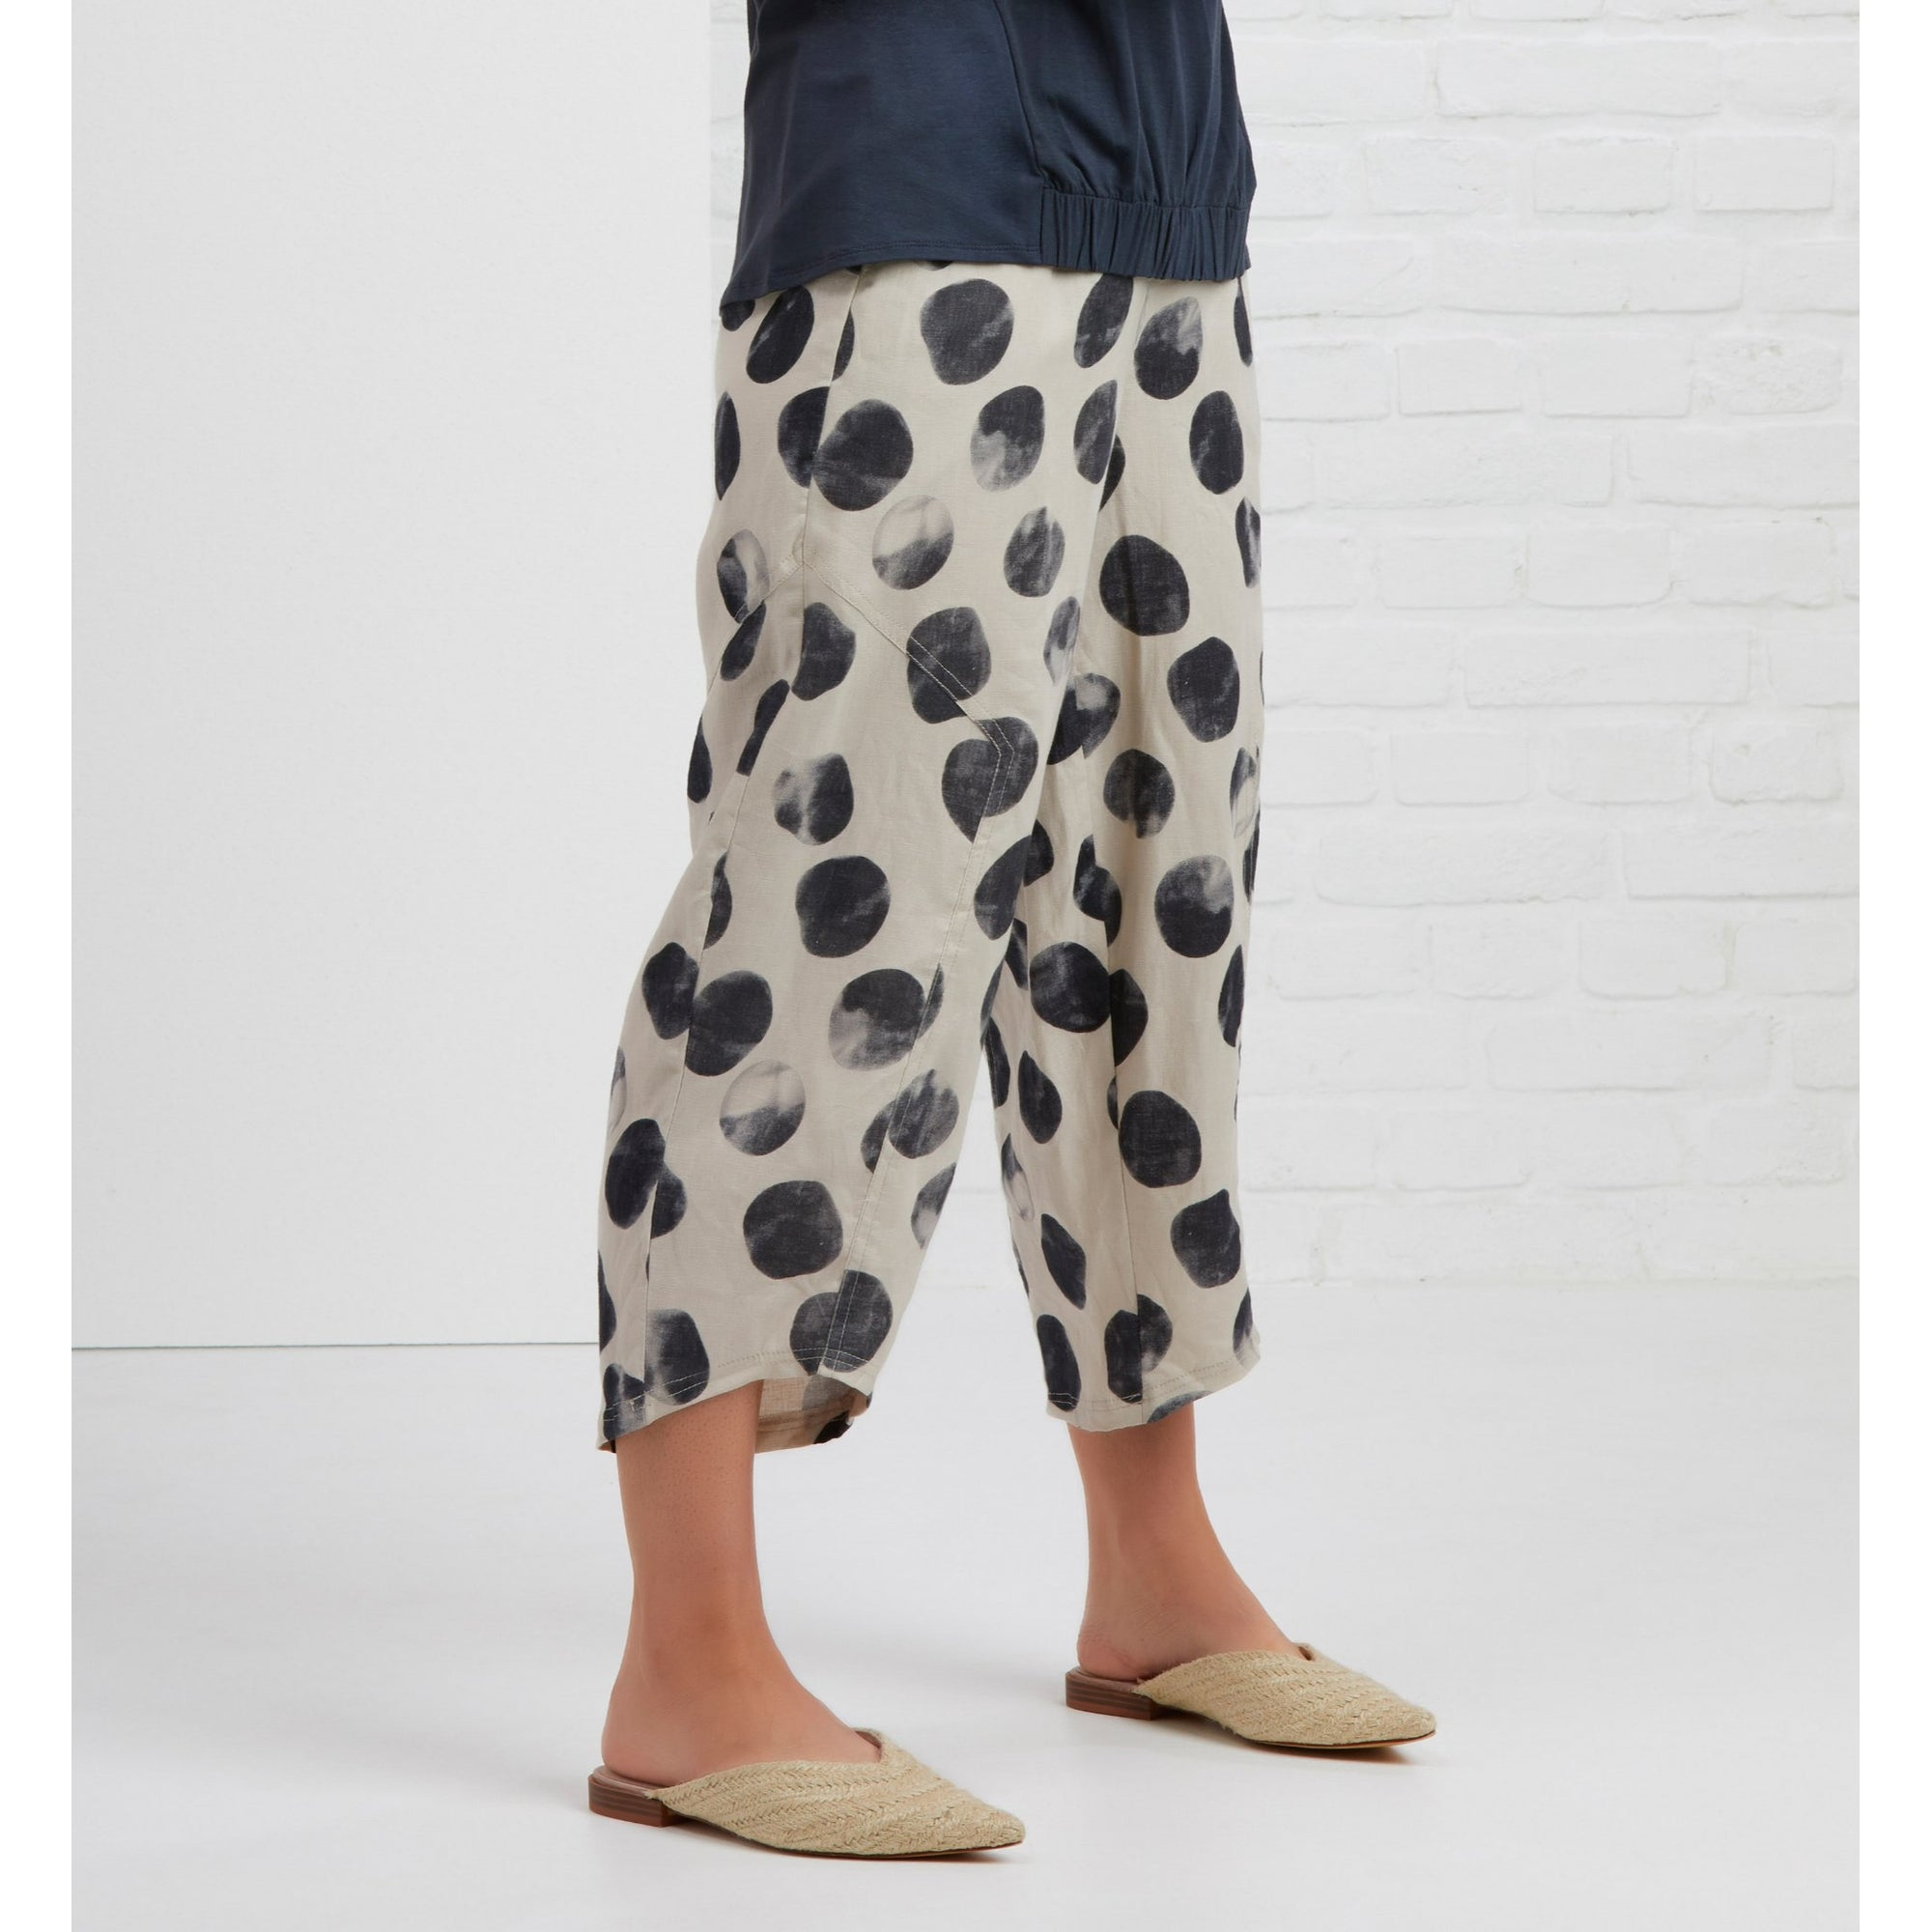 Foil Broadening Horizon Pant in Pebbles pure linen print